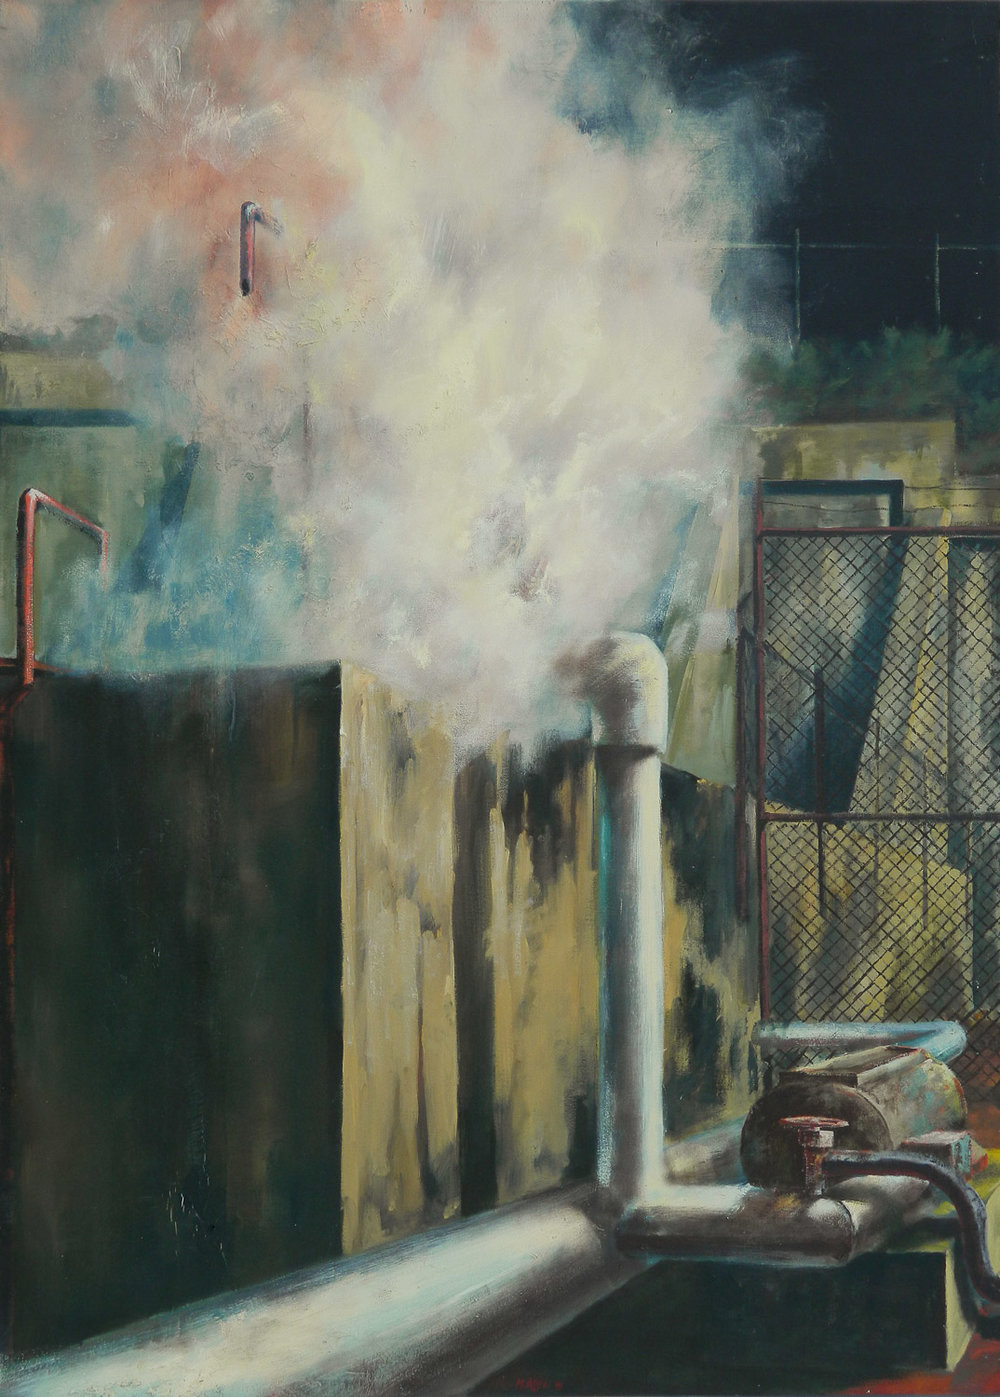 Steam, No.5, 1995